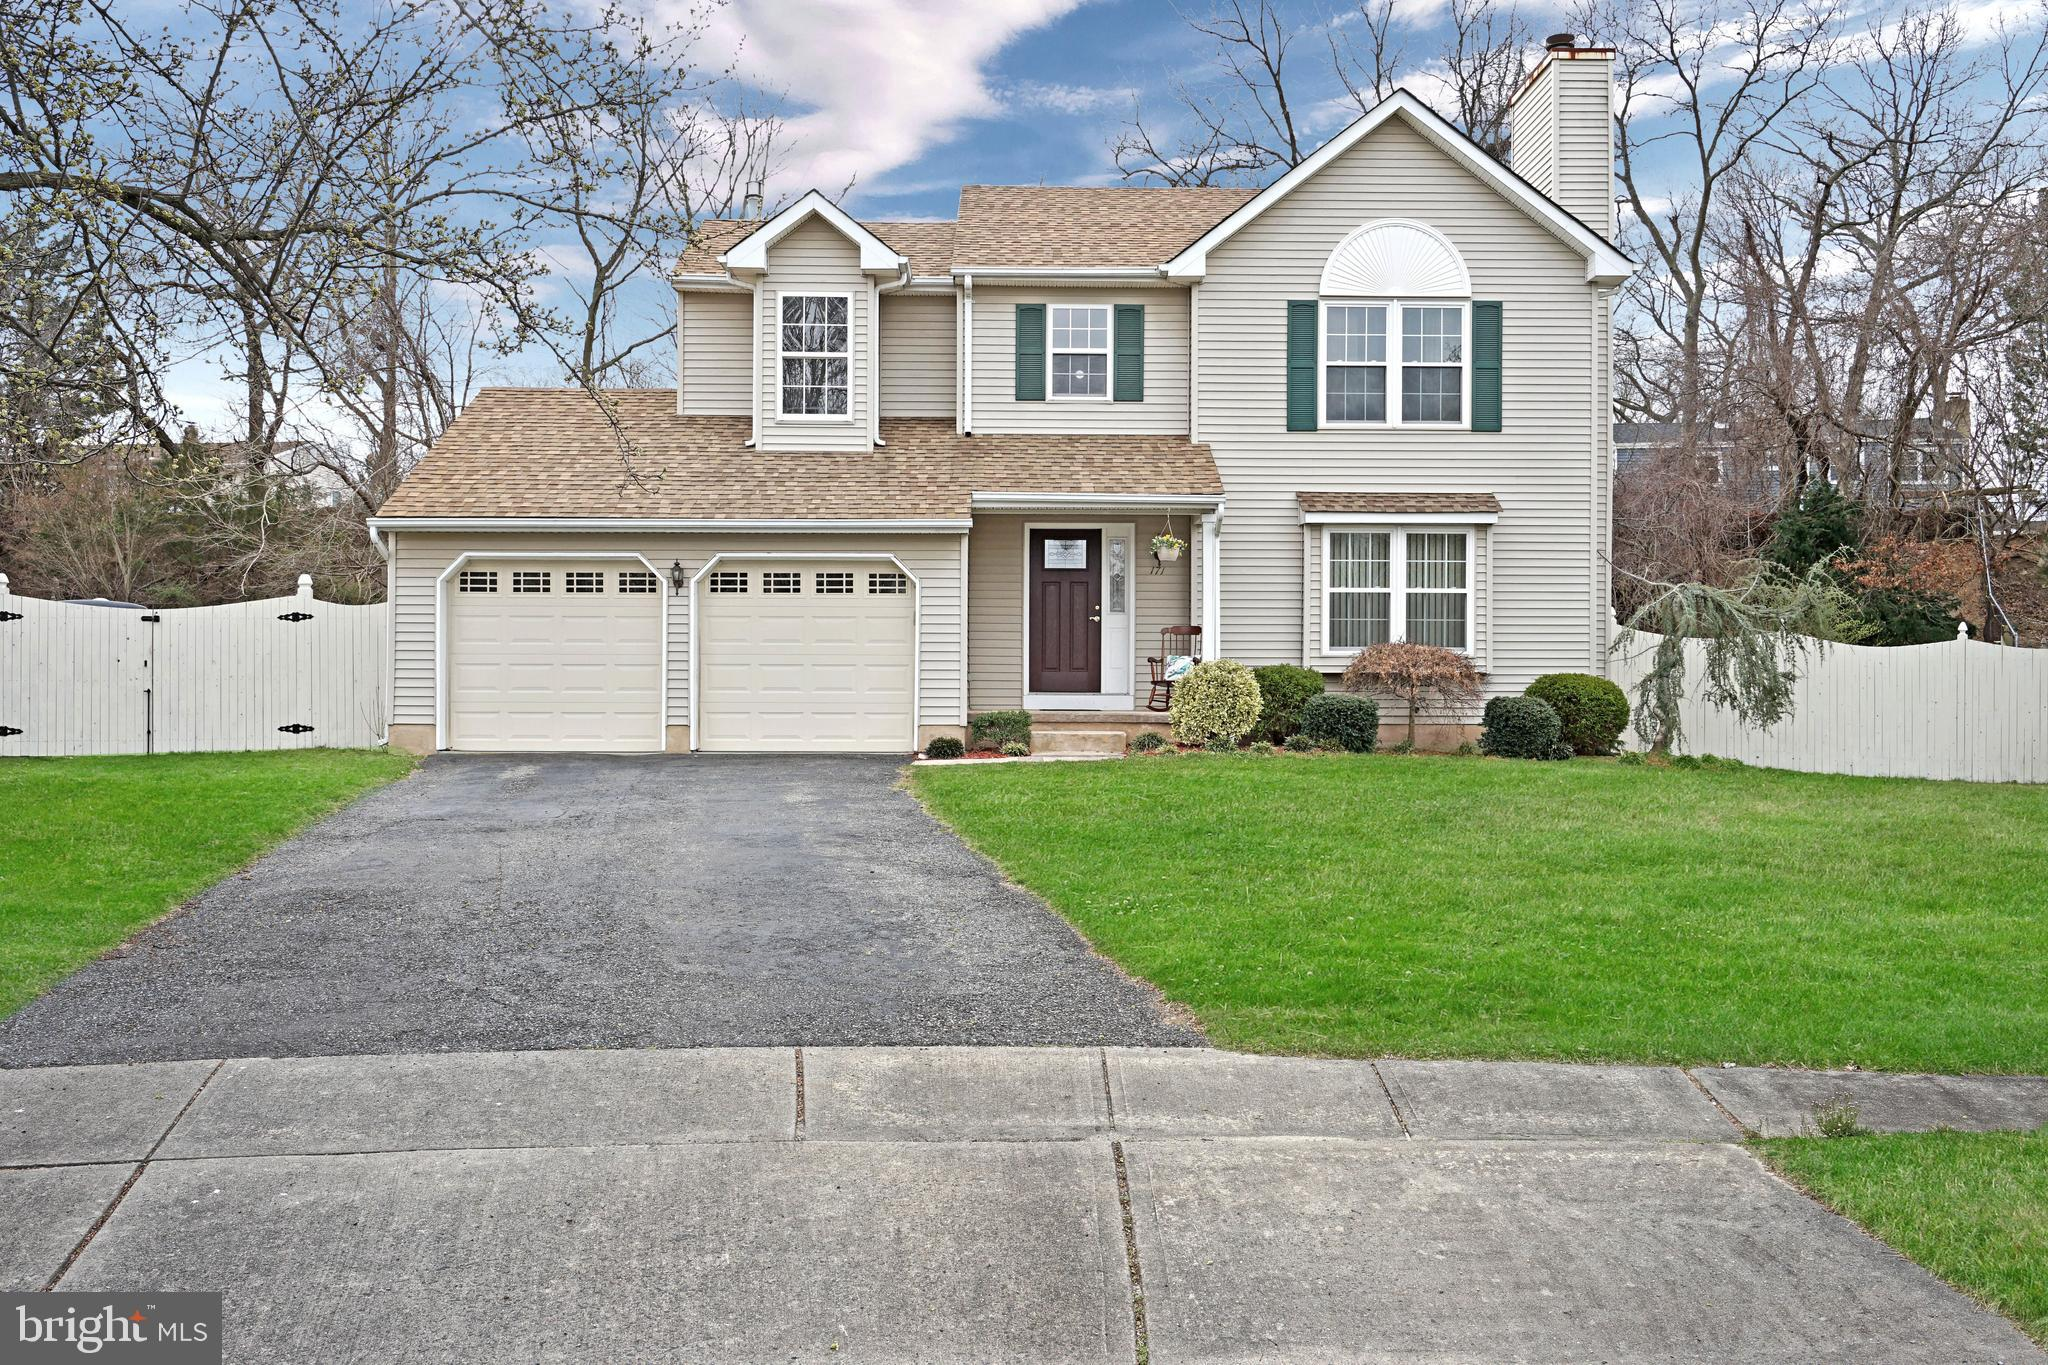 171 BLACK OAK COURT, TOMS RIVER, NJ 08753